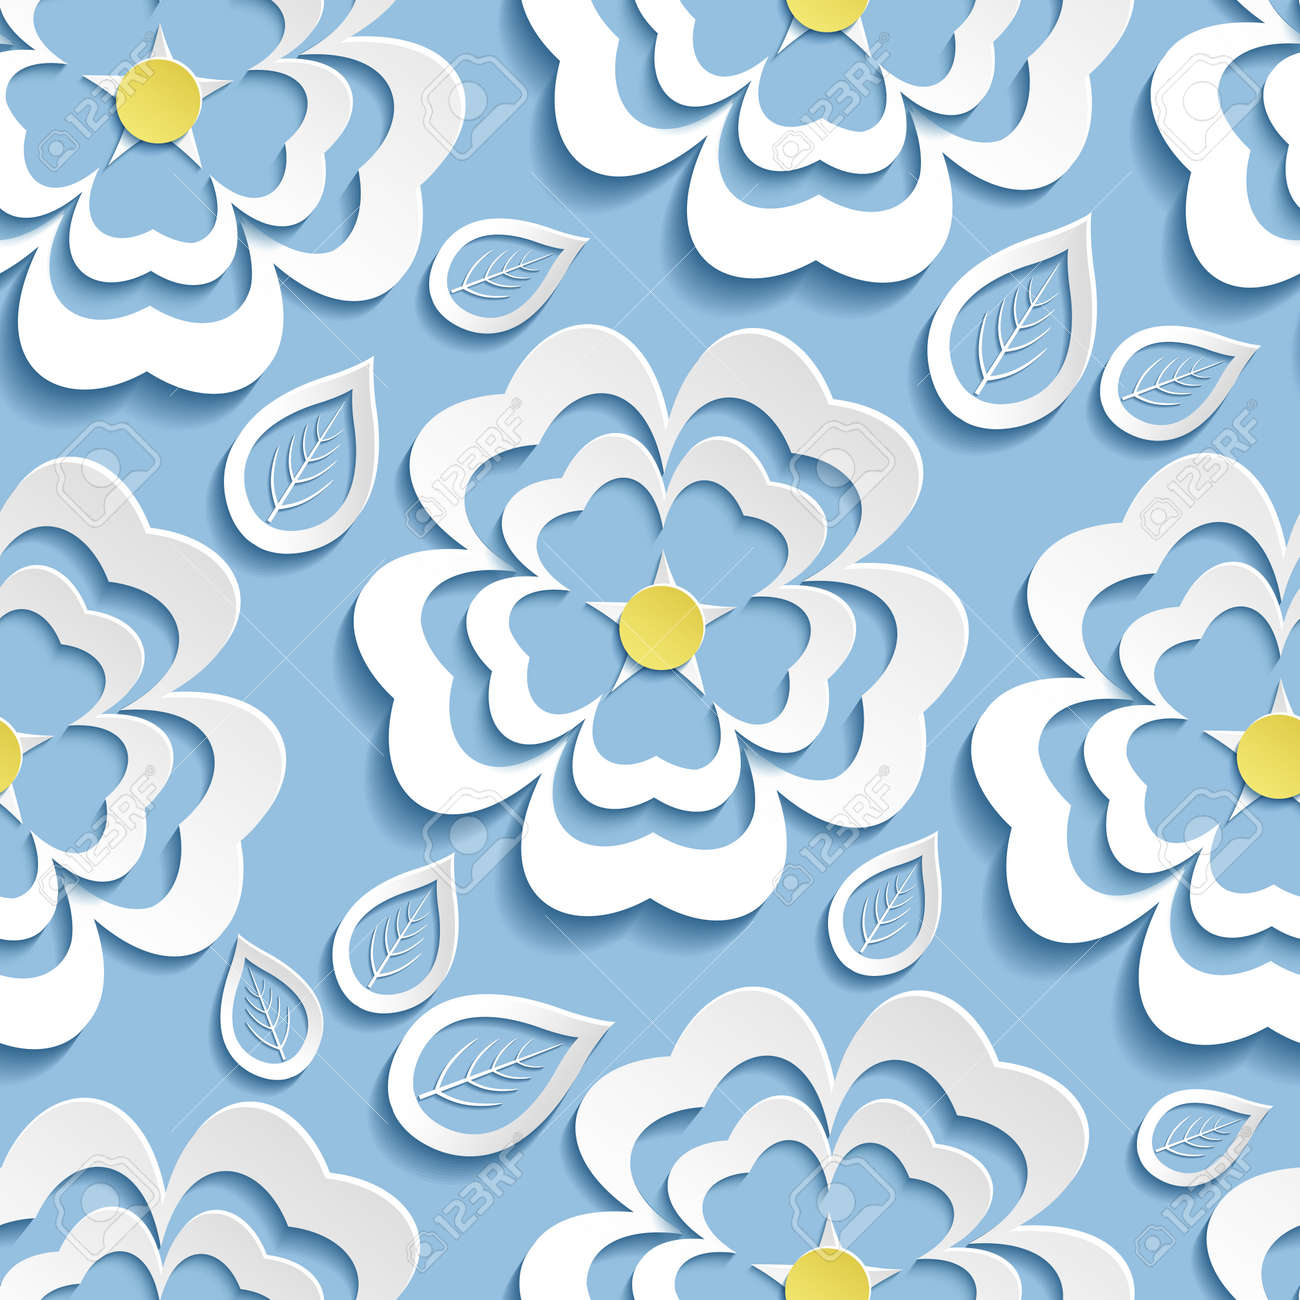 Modern Stylish Nature Blue Background Seamless Pattern With White Ornate  Stylized Blossoming Flower Sakura Japanese Cherry Tree And Leaves 3d Style.